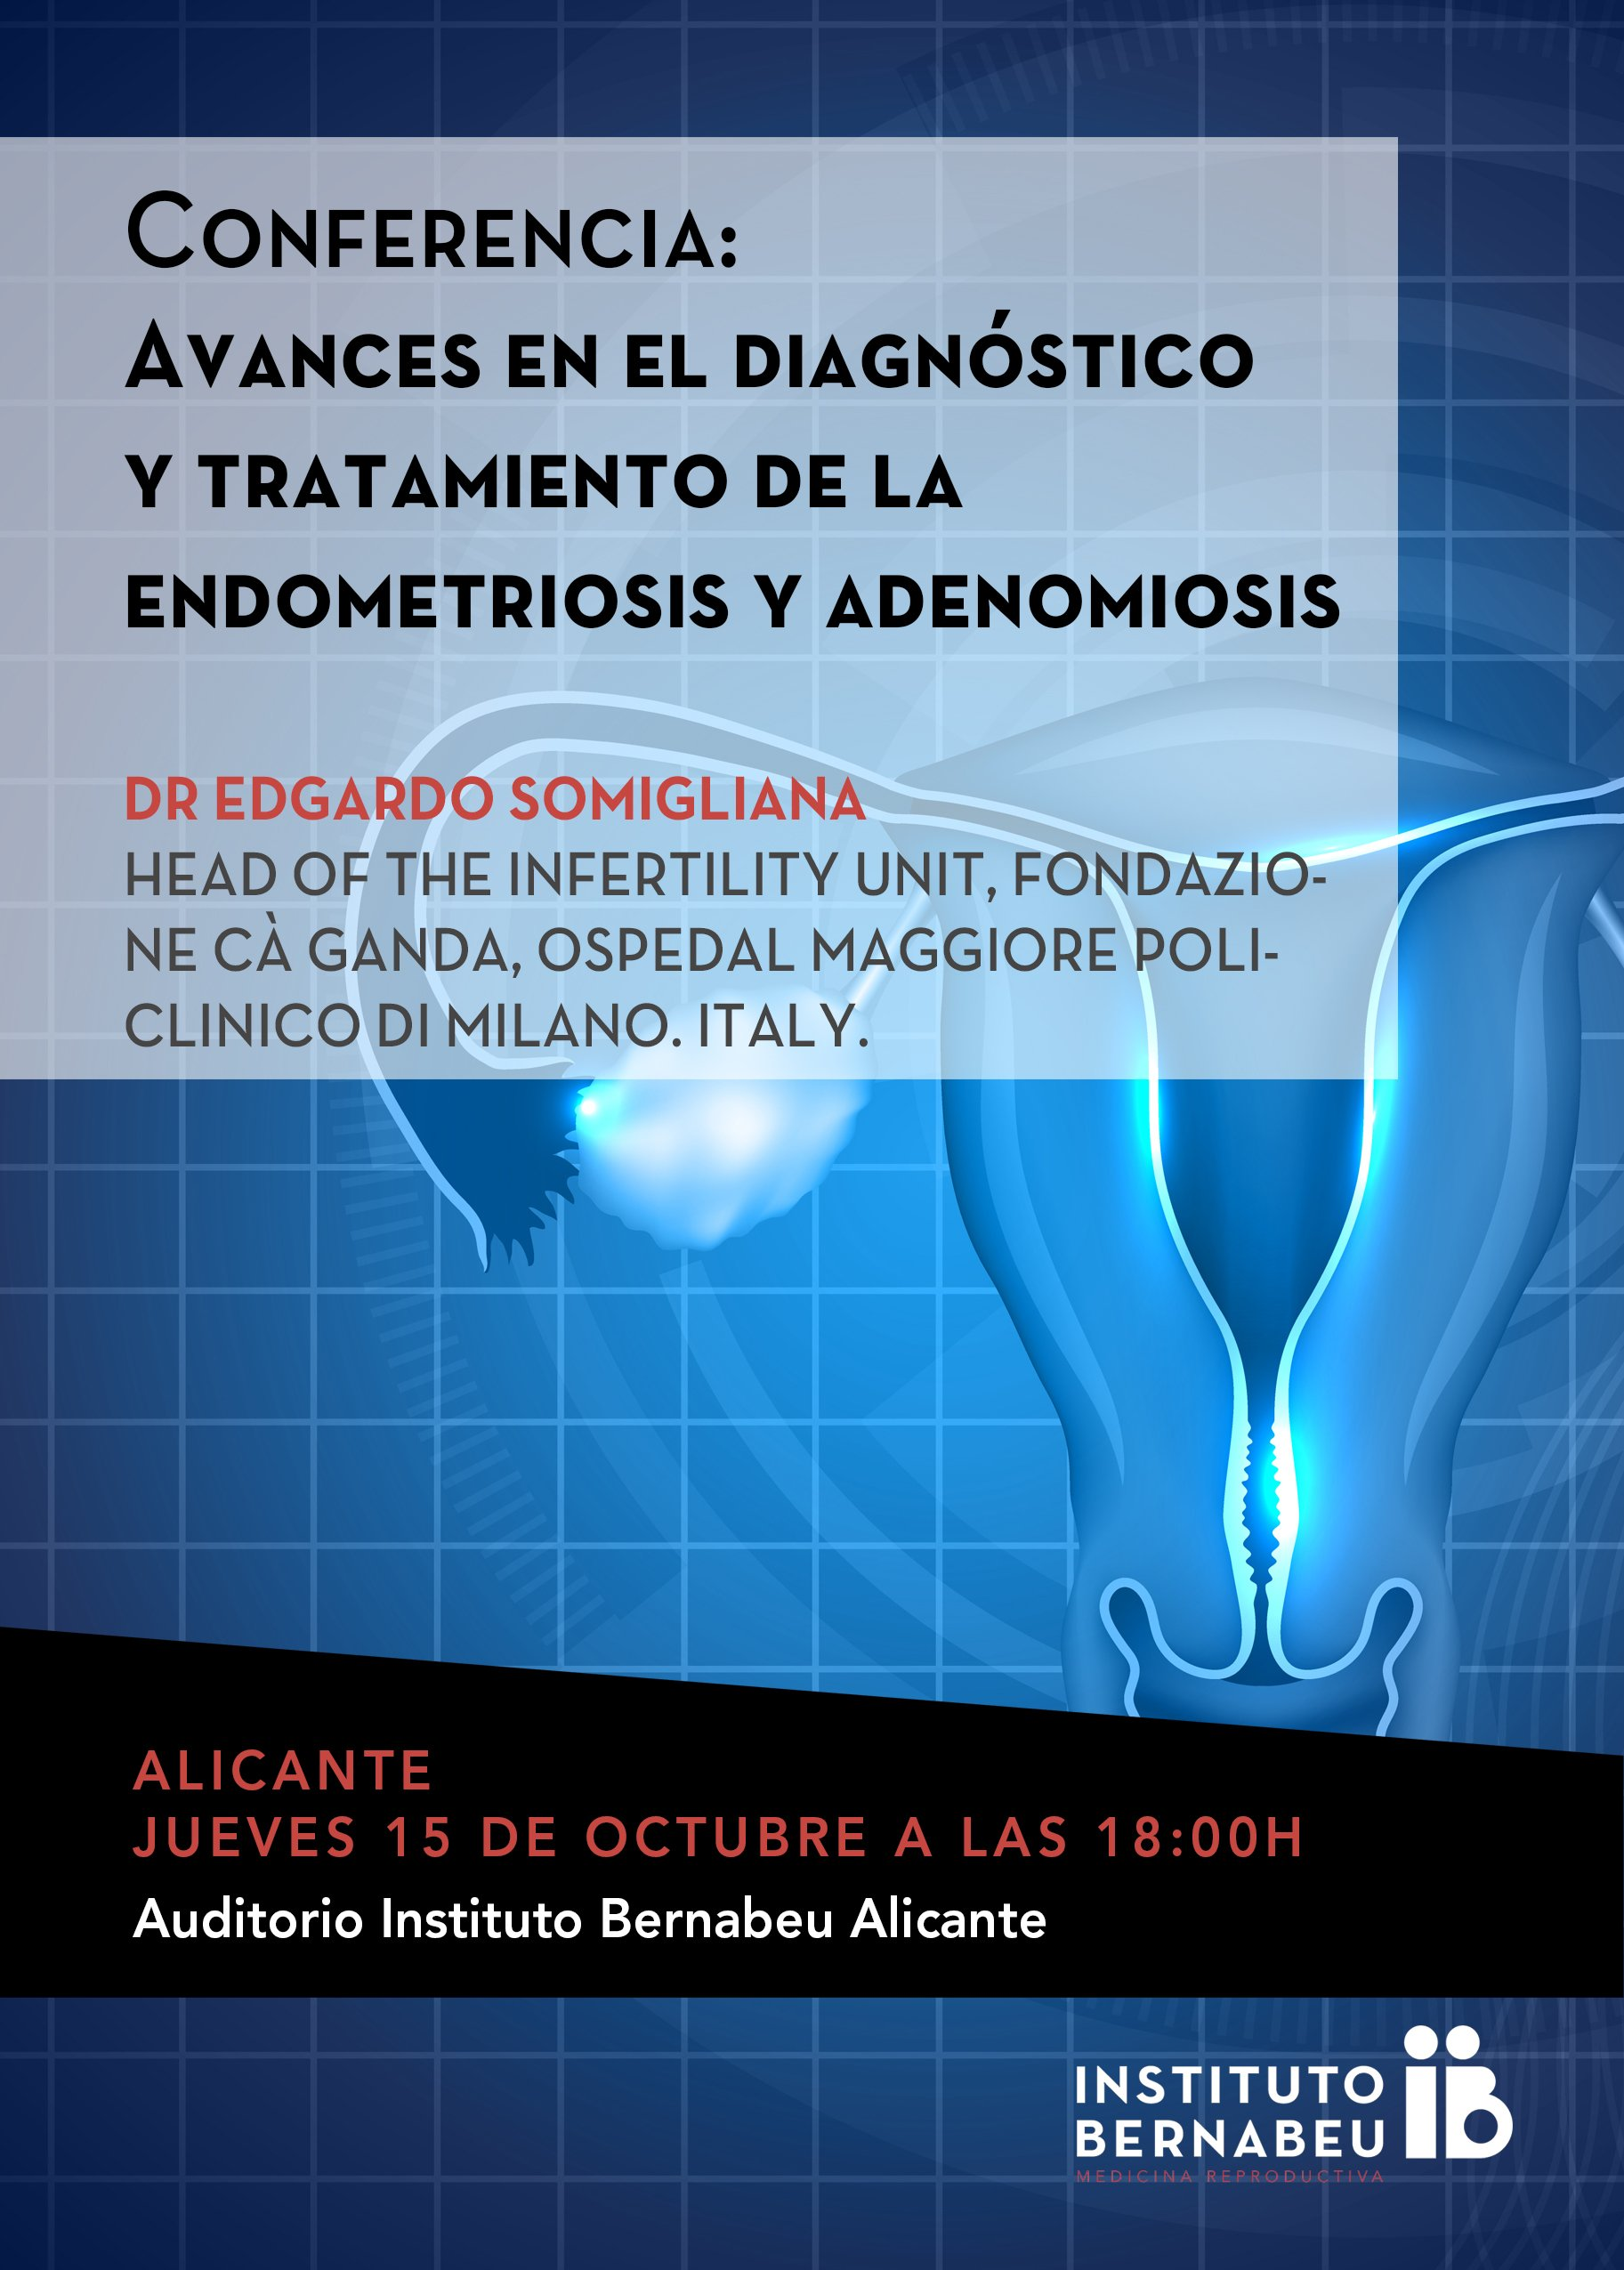 Advances in the diagnosis and treatment of endometriosis and adenomyosis